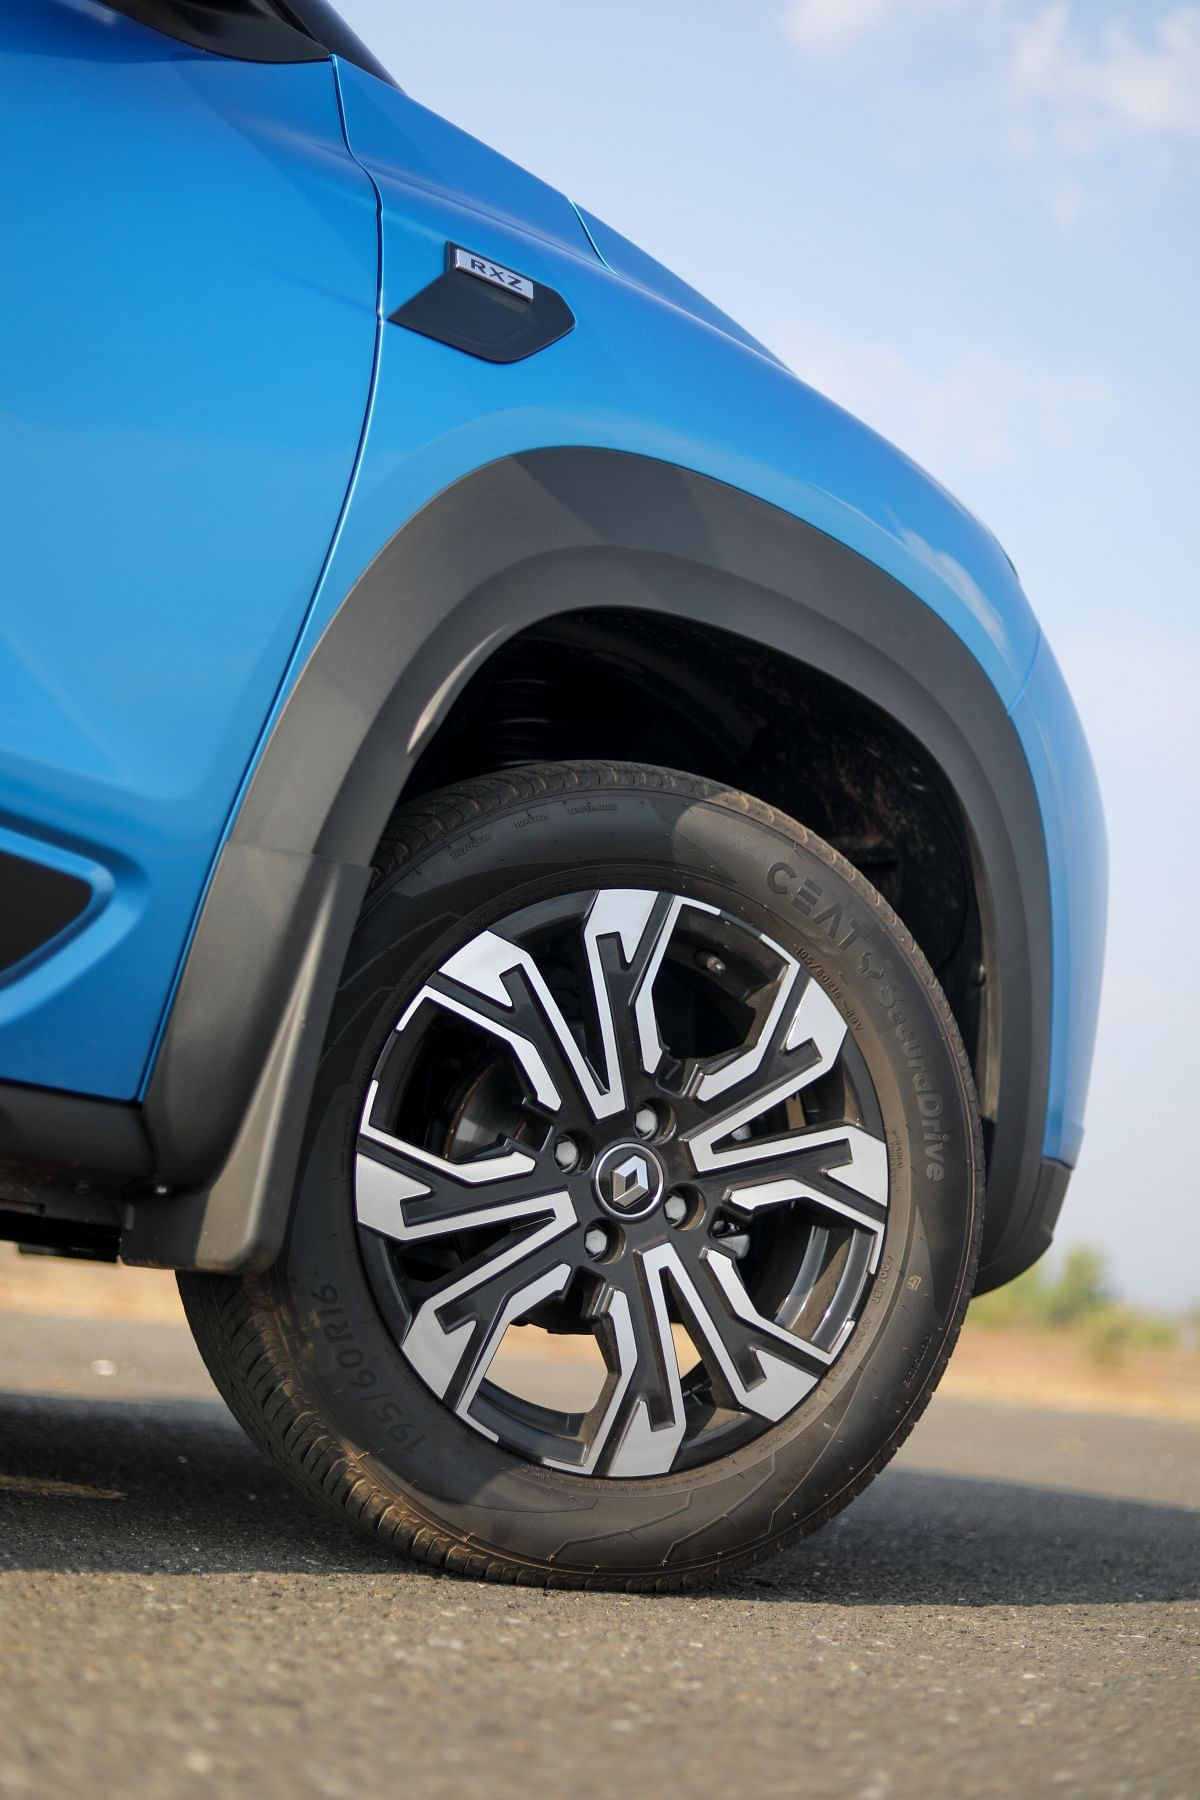 Renault Kiger's 16-inch rims have a neat two-tone design